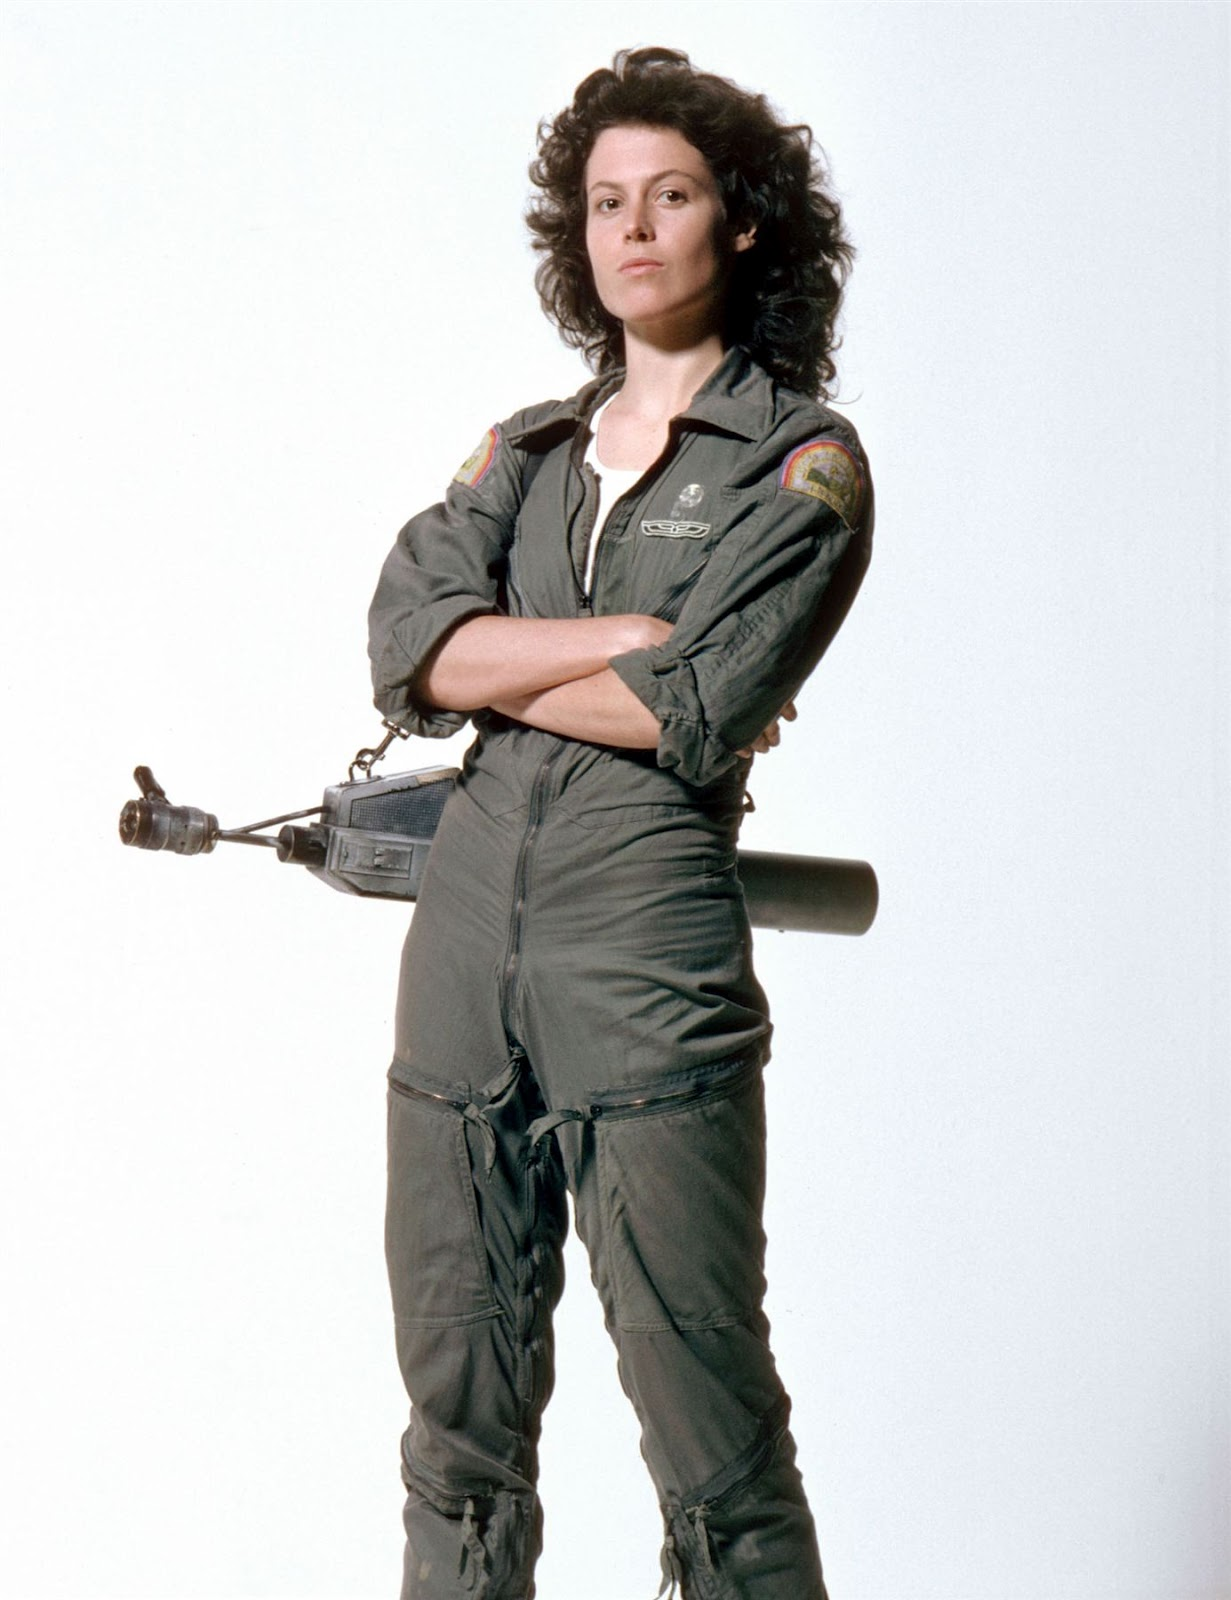 http://2.bp.blogspot.com/-woJJxzgbUX8/T_hZd1X60-I/AAAAAAAAAcU/TO5GJ-Dq6hs/s1600/movies_sigourney_weaver_alien_desktop_1964x2552_wallpaper-1087532_resized.jpg